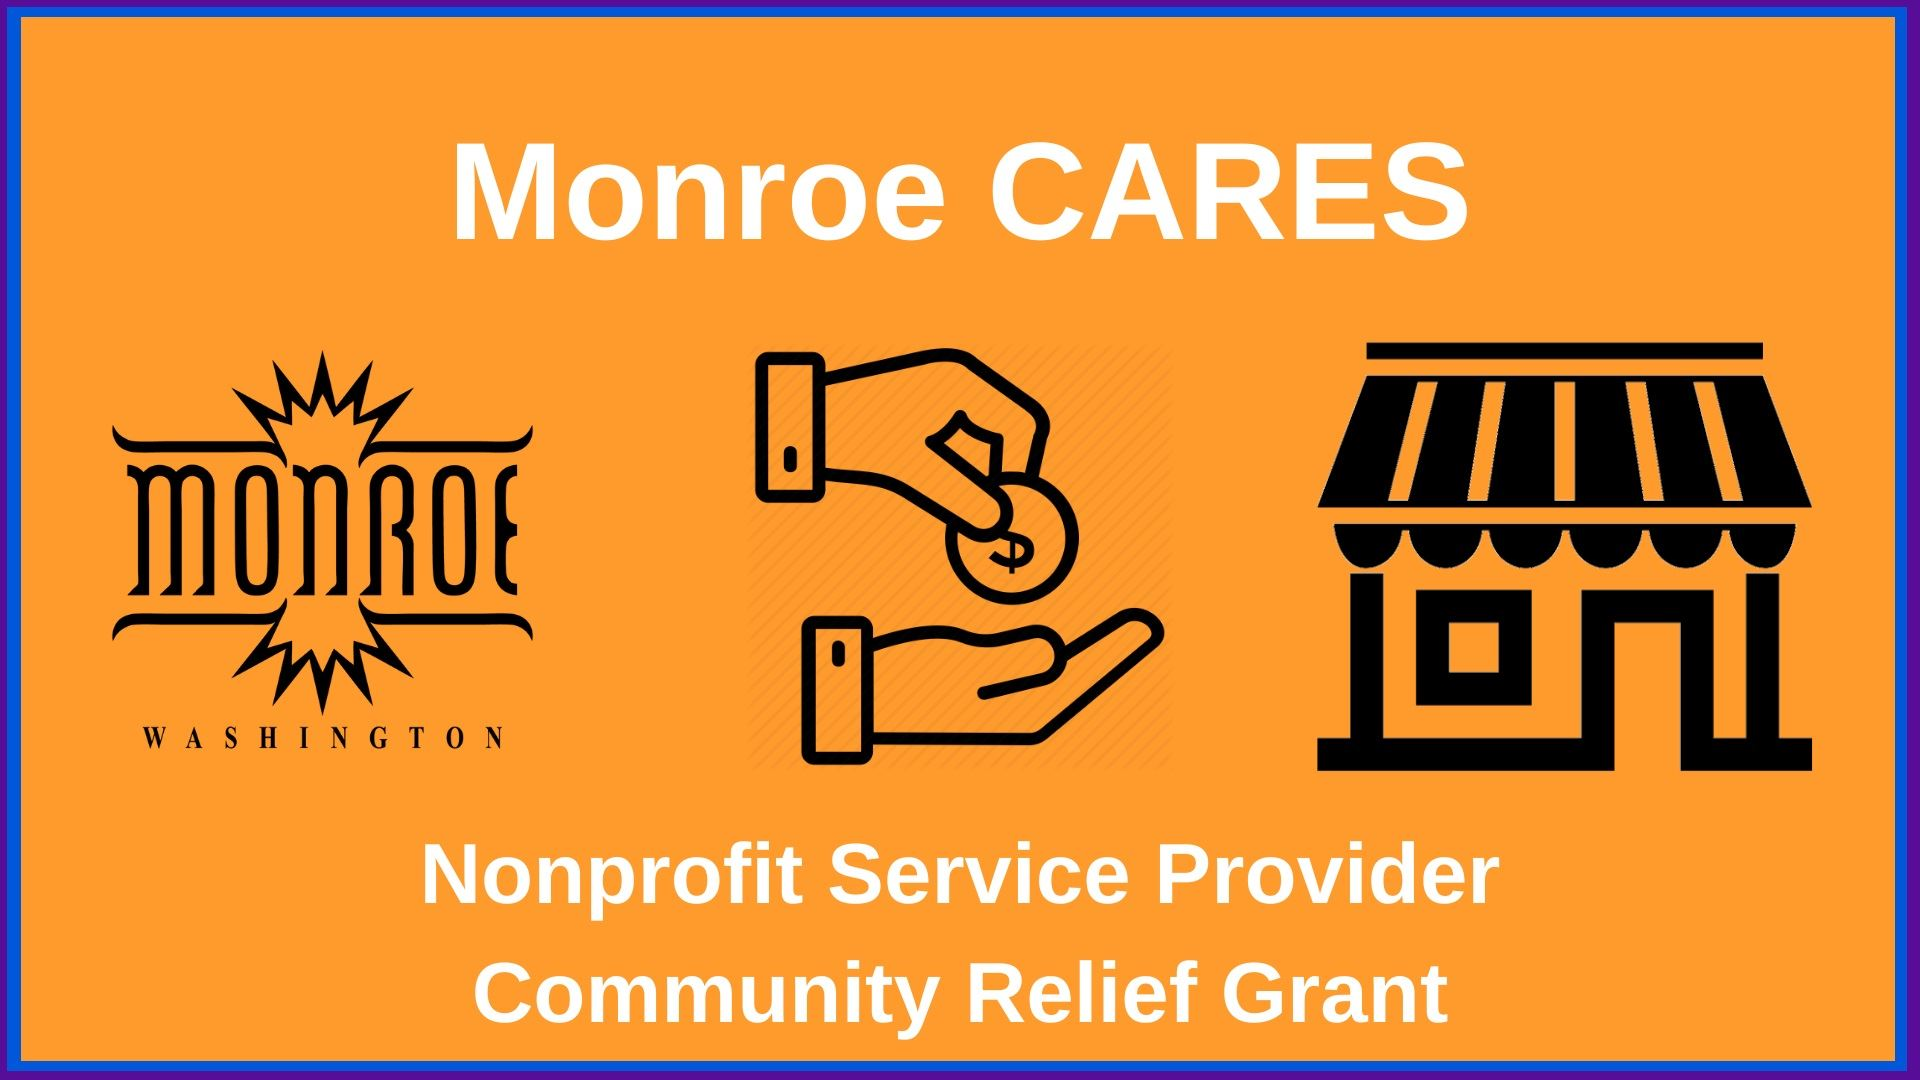 Monroe CARES Service Provider